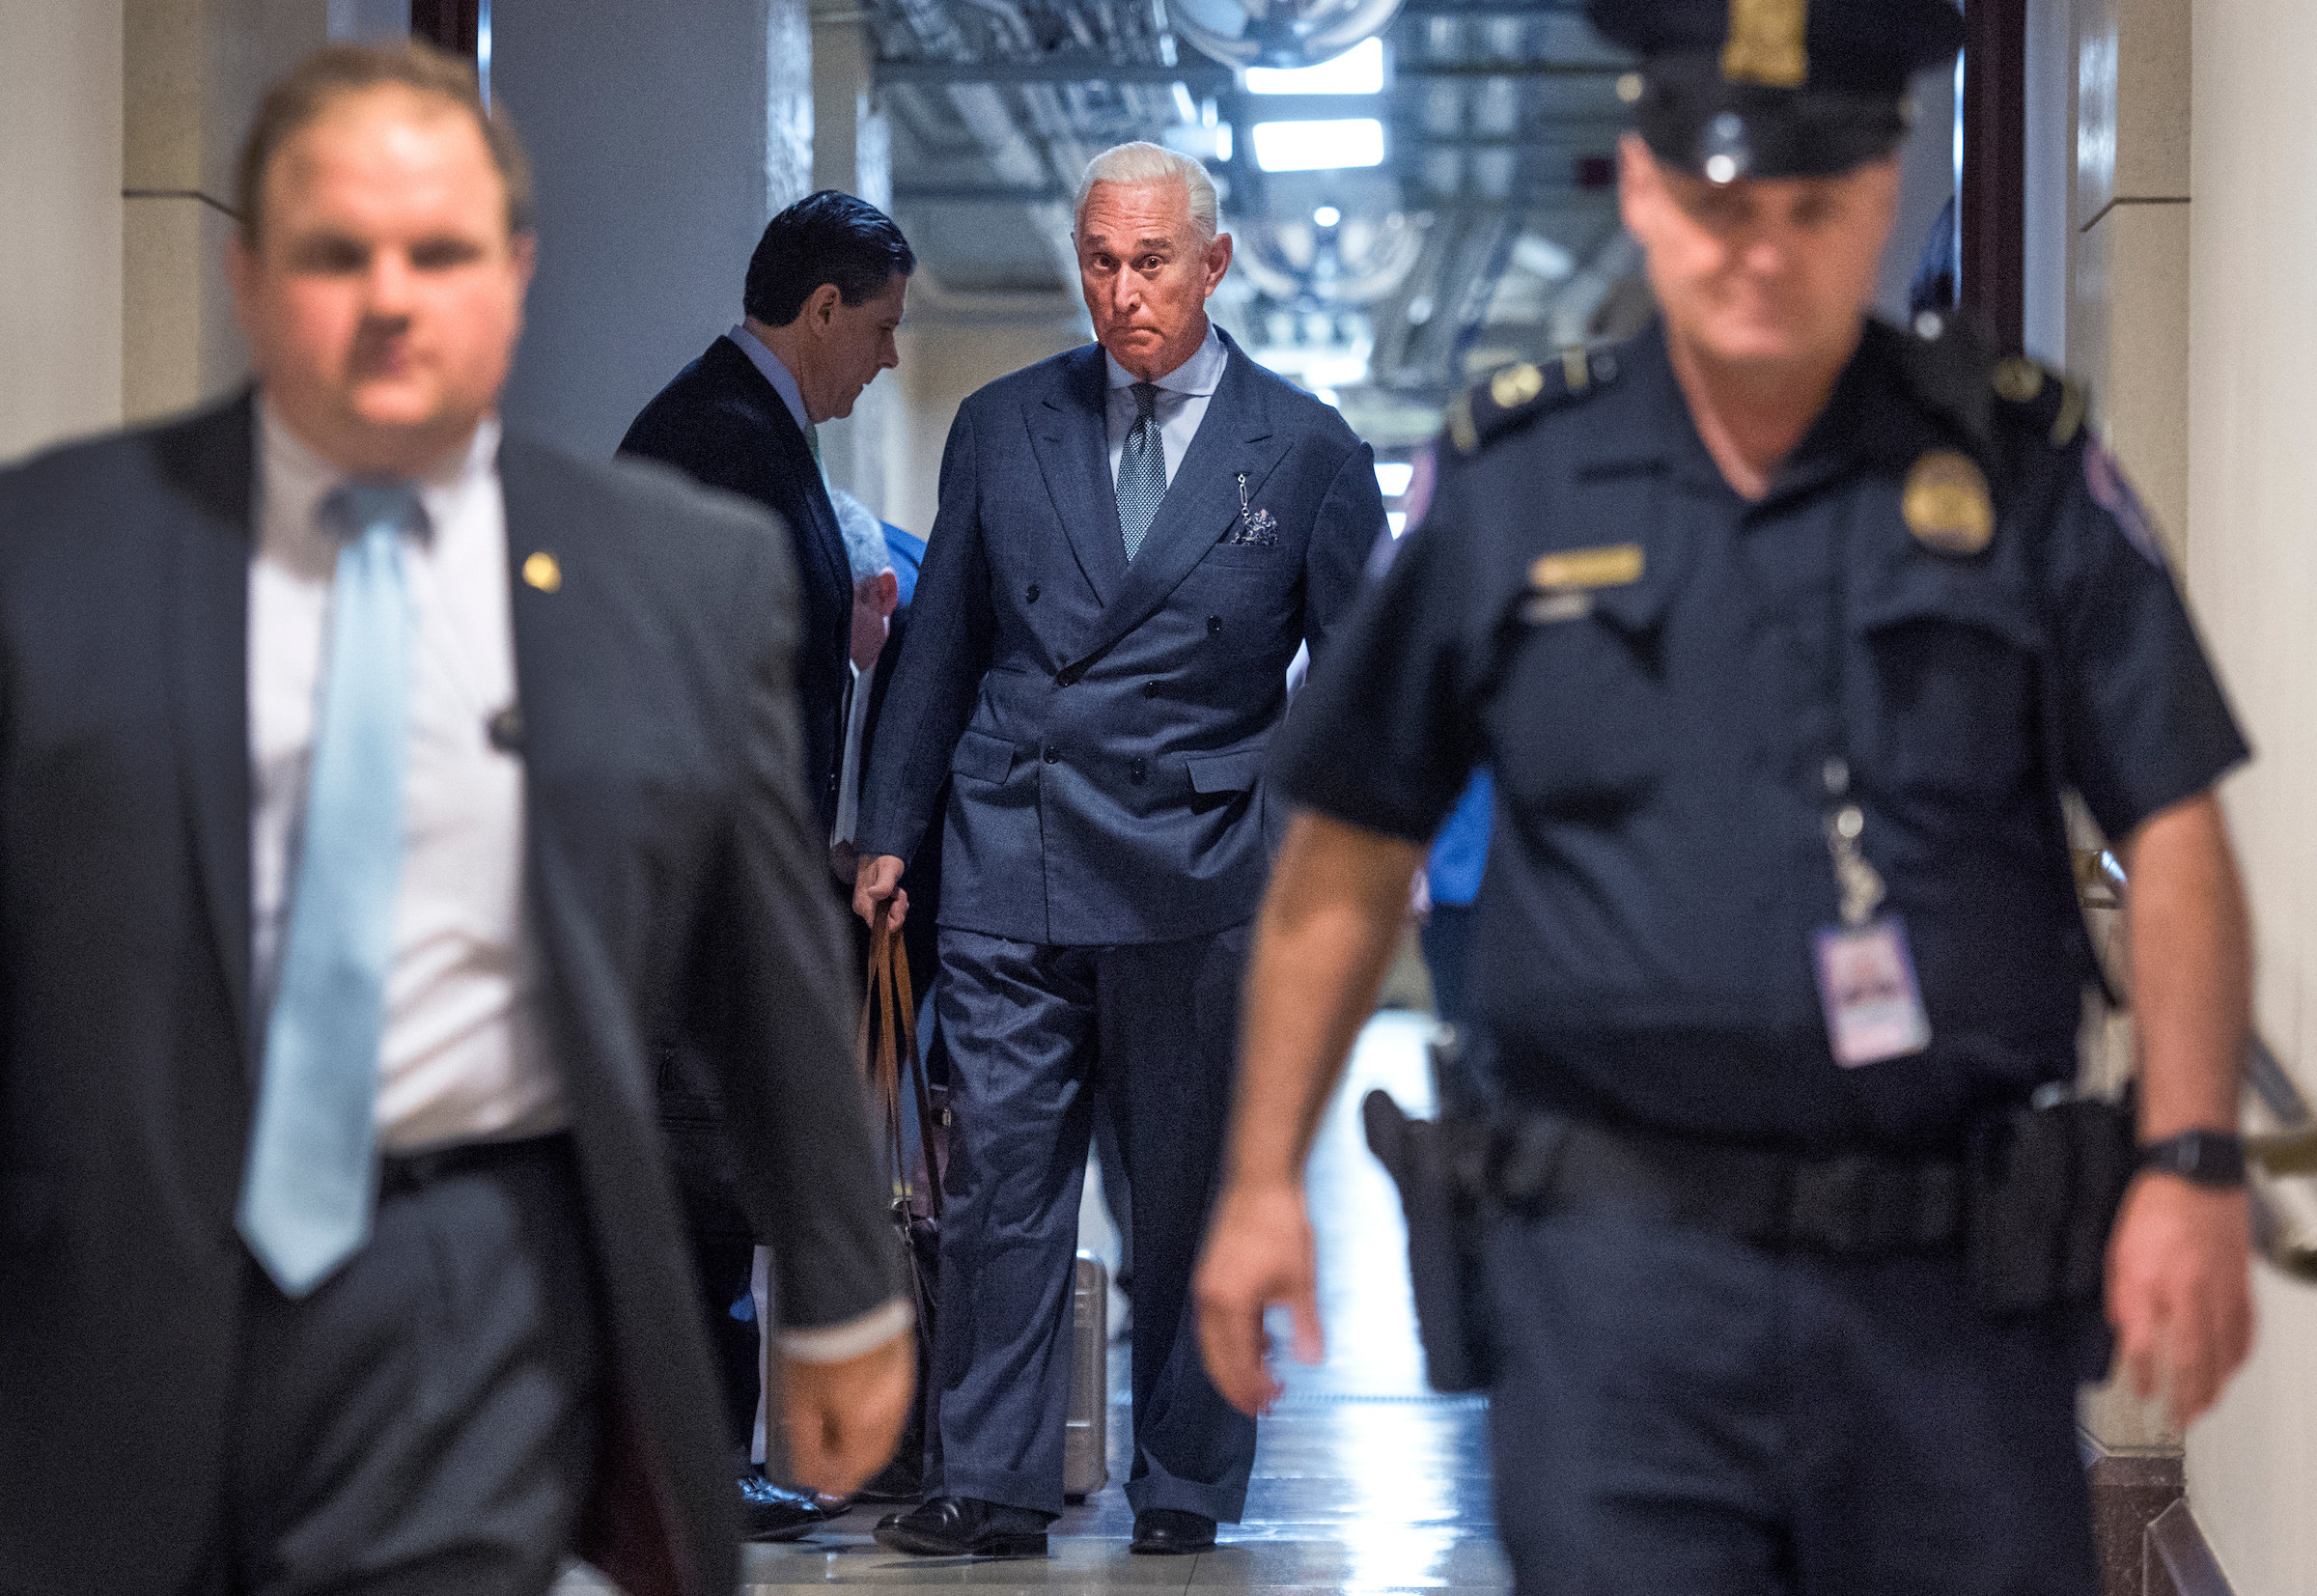 UNITED STATES - SEPTEMBER 26: Roger Stone, advisor to President Trump, arrives in the Capitol to speak with the House Intelligence Committee on possible Russian interference in the 2016 election on September 26, 2017. (Photo By Tom Williams/CQ Roll Call)